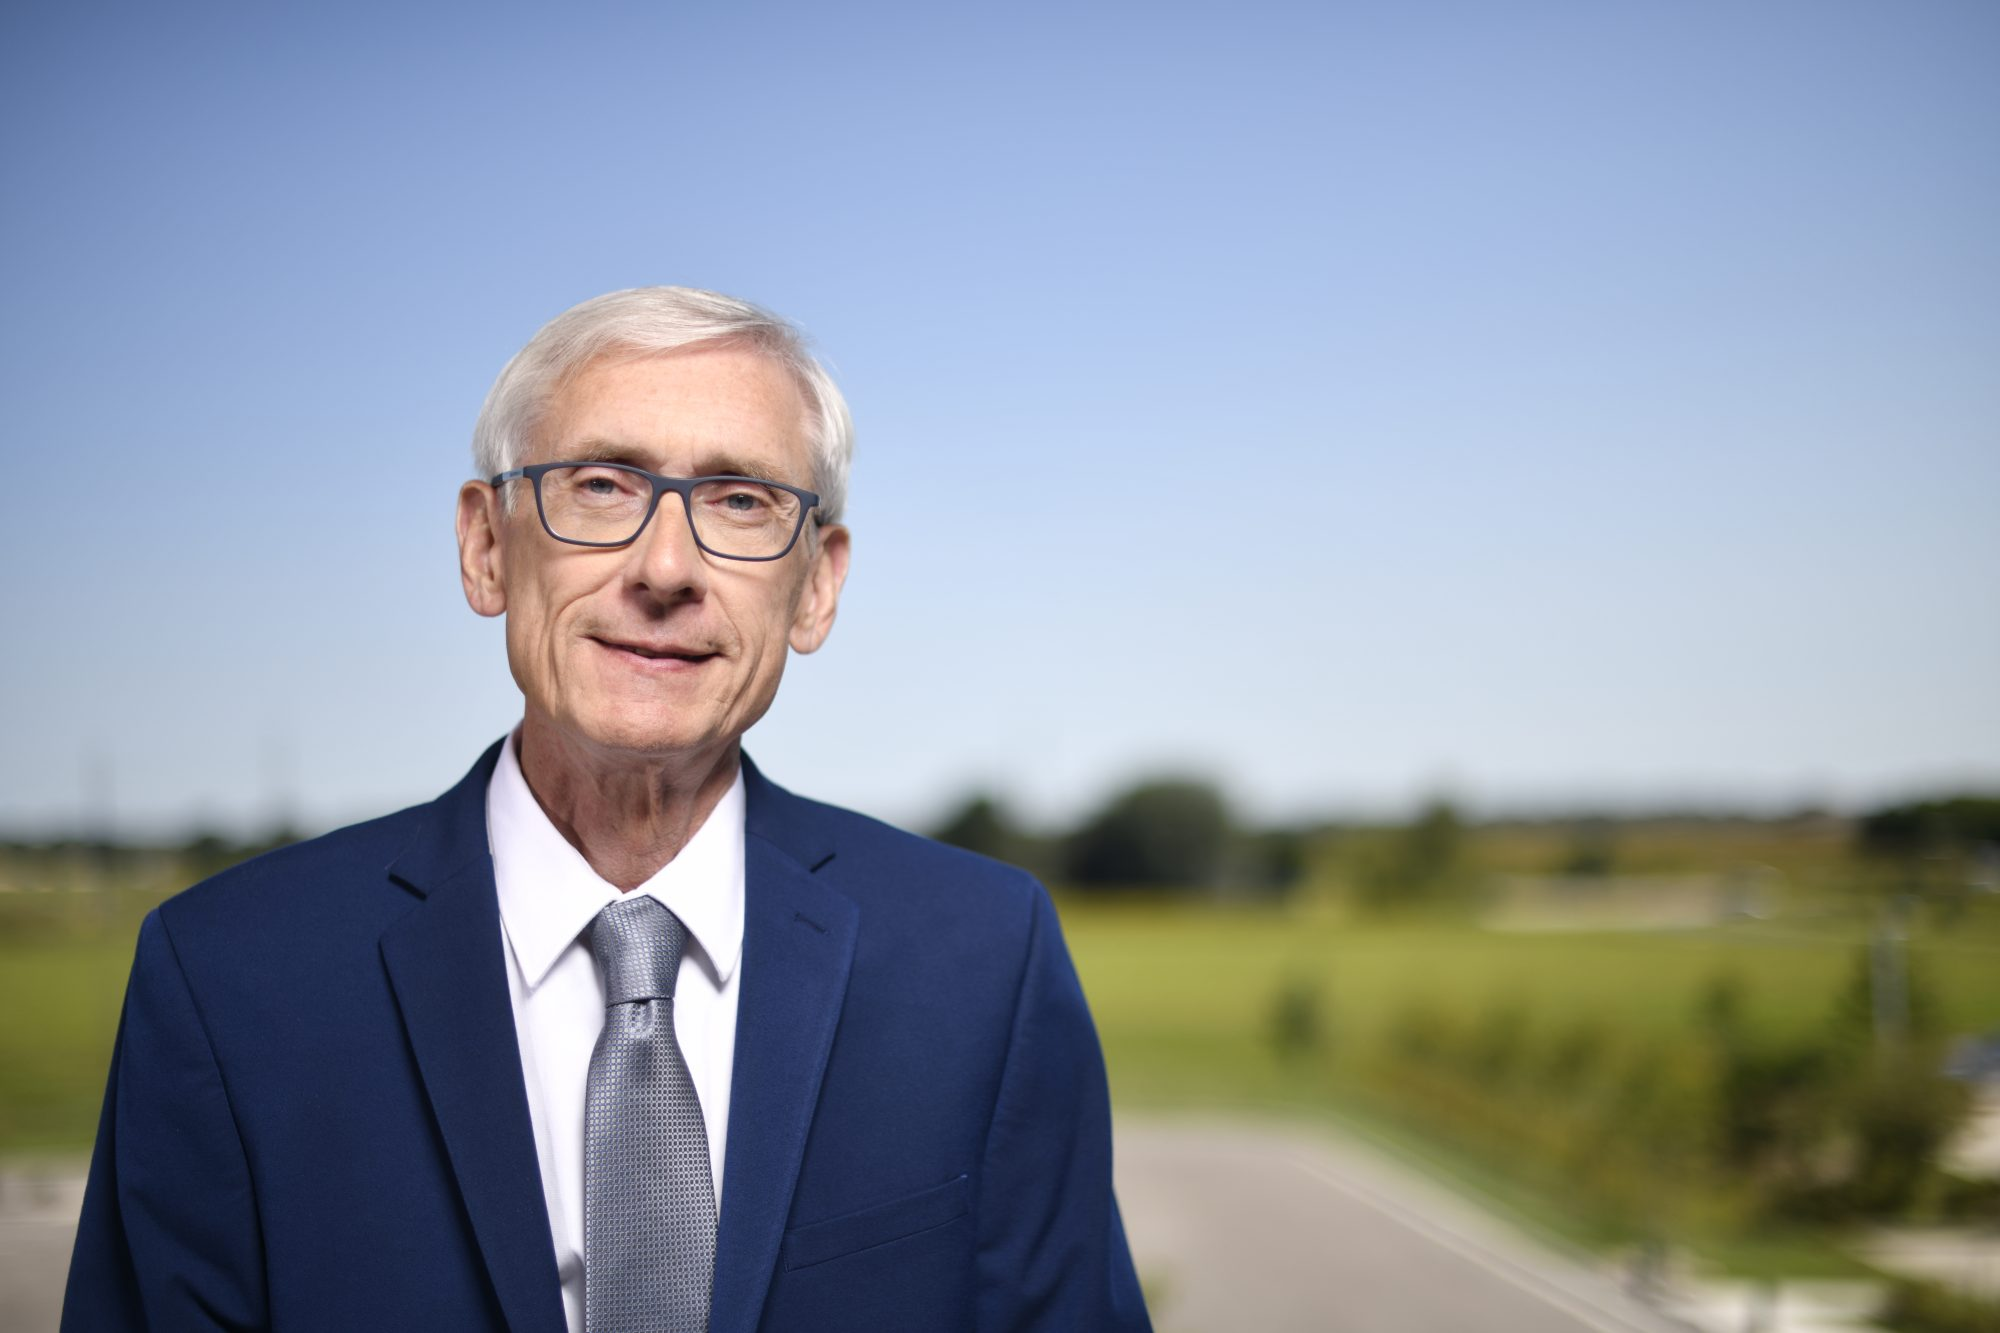 Gov. Evers Signs PSC Bill to Support Voice of Utility Customers